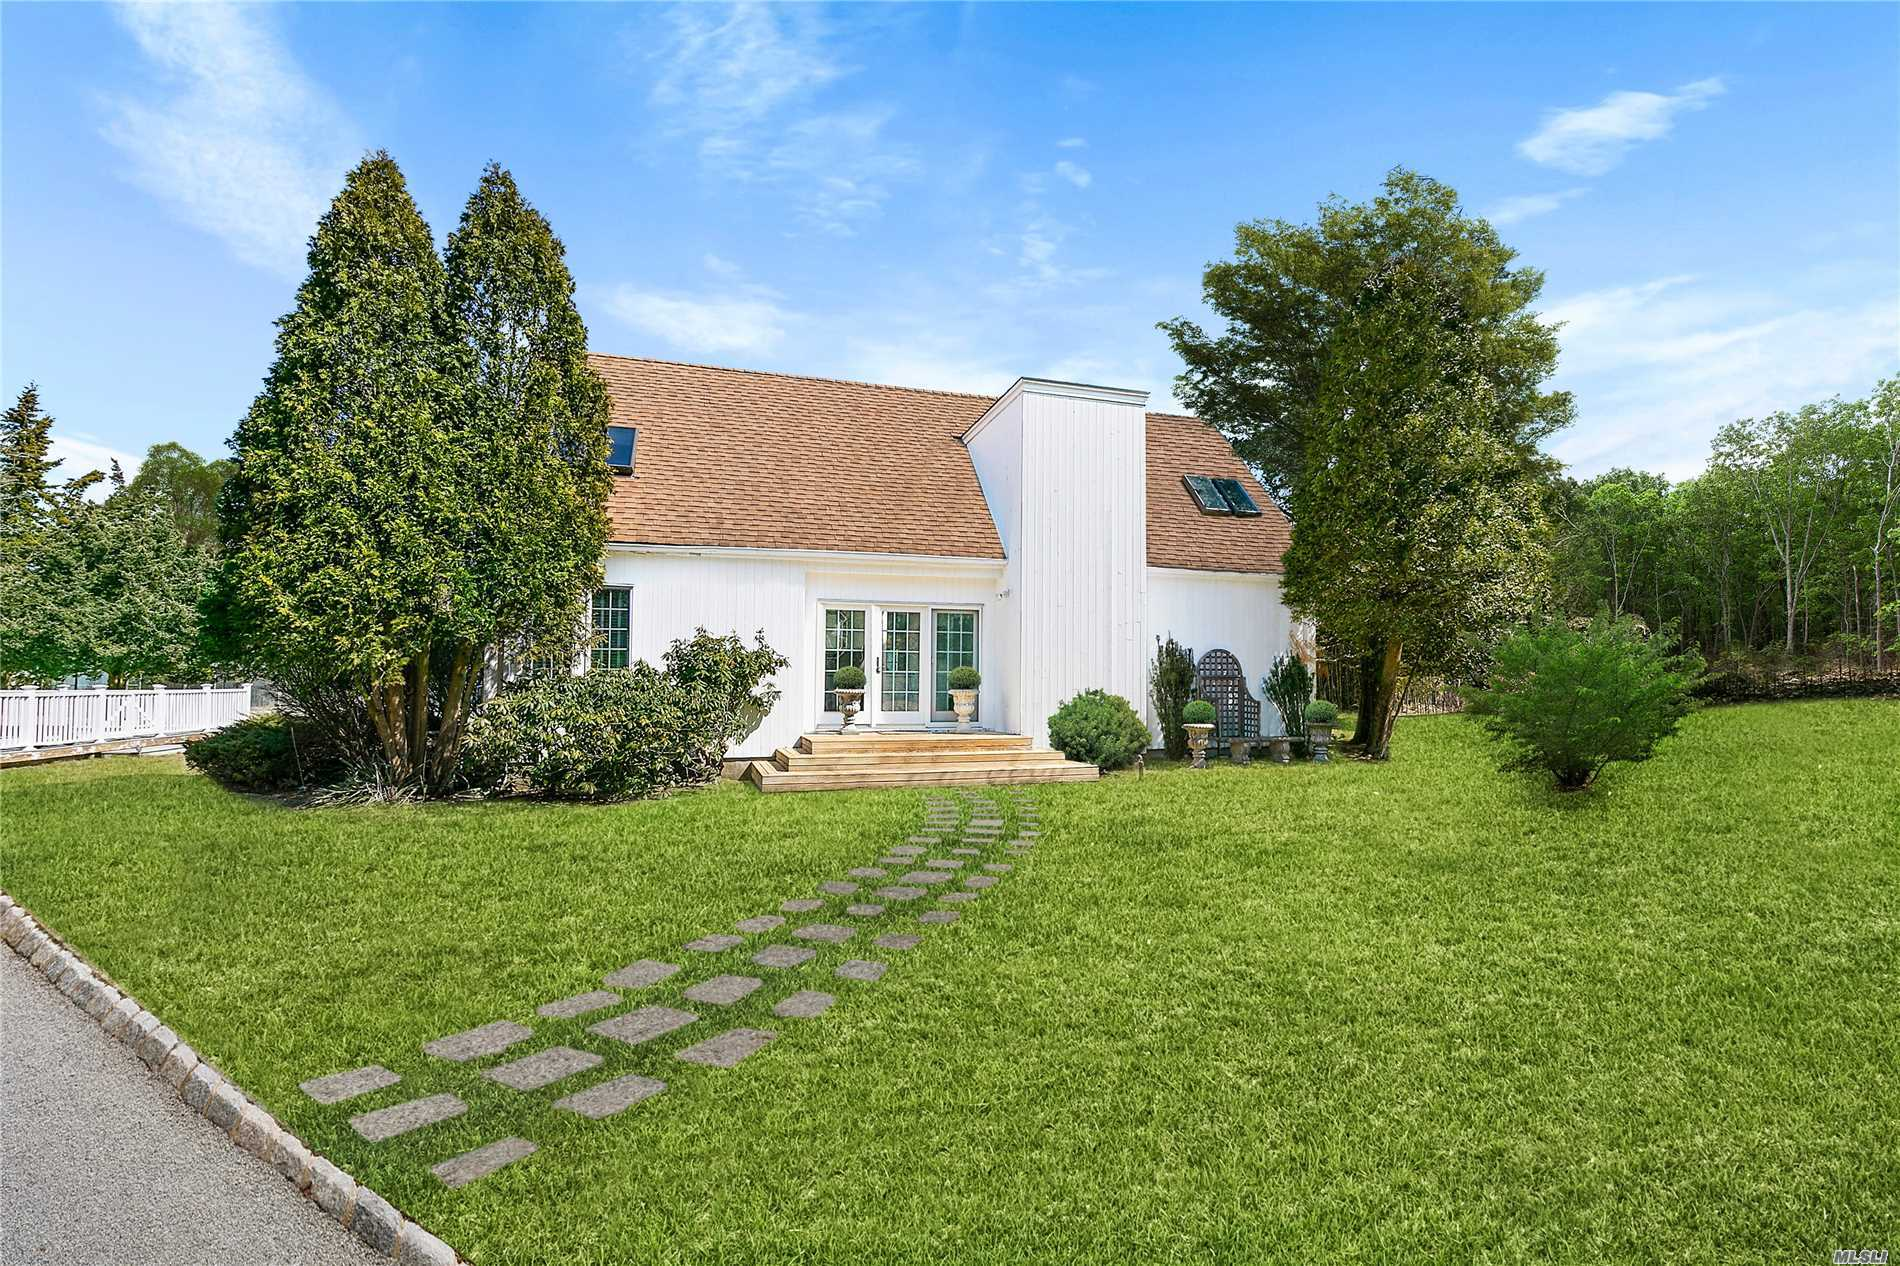 Beautifully Appointed 3 Bedroom Contemporary On A Private 1.15 Acre Flag Lot. Pool, Tennis, Fireplace, Finished Lower Level And More For The Perfect Hamptons Escape!